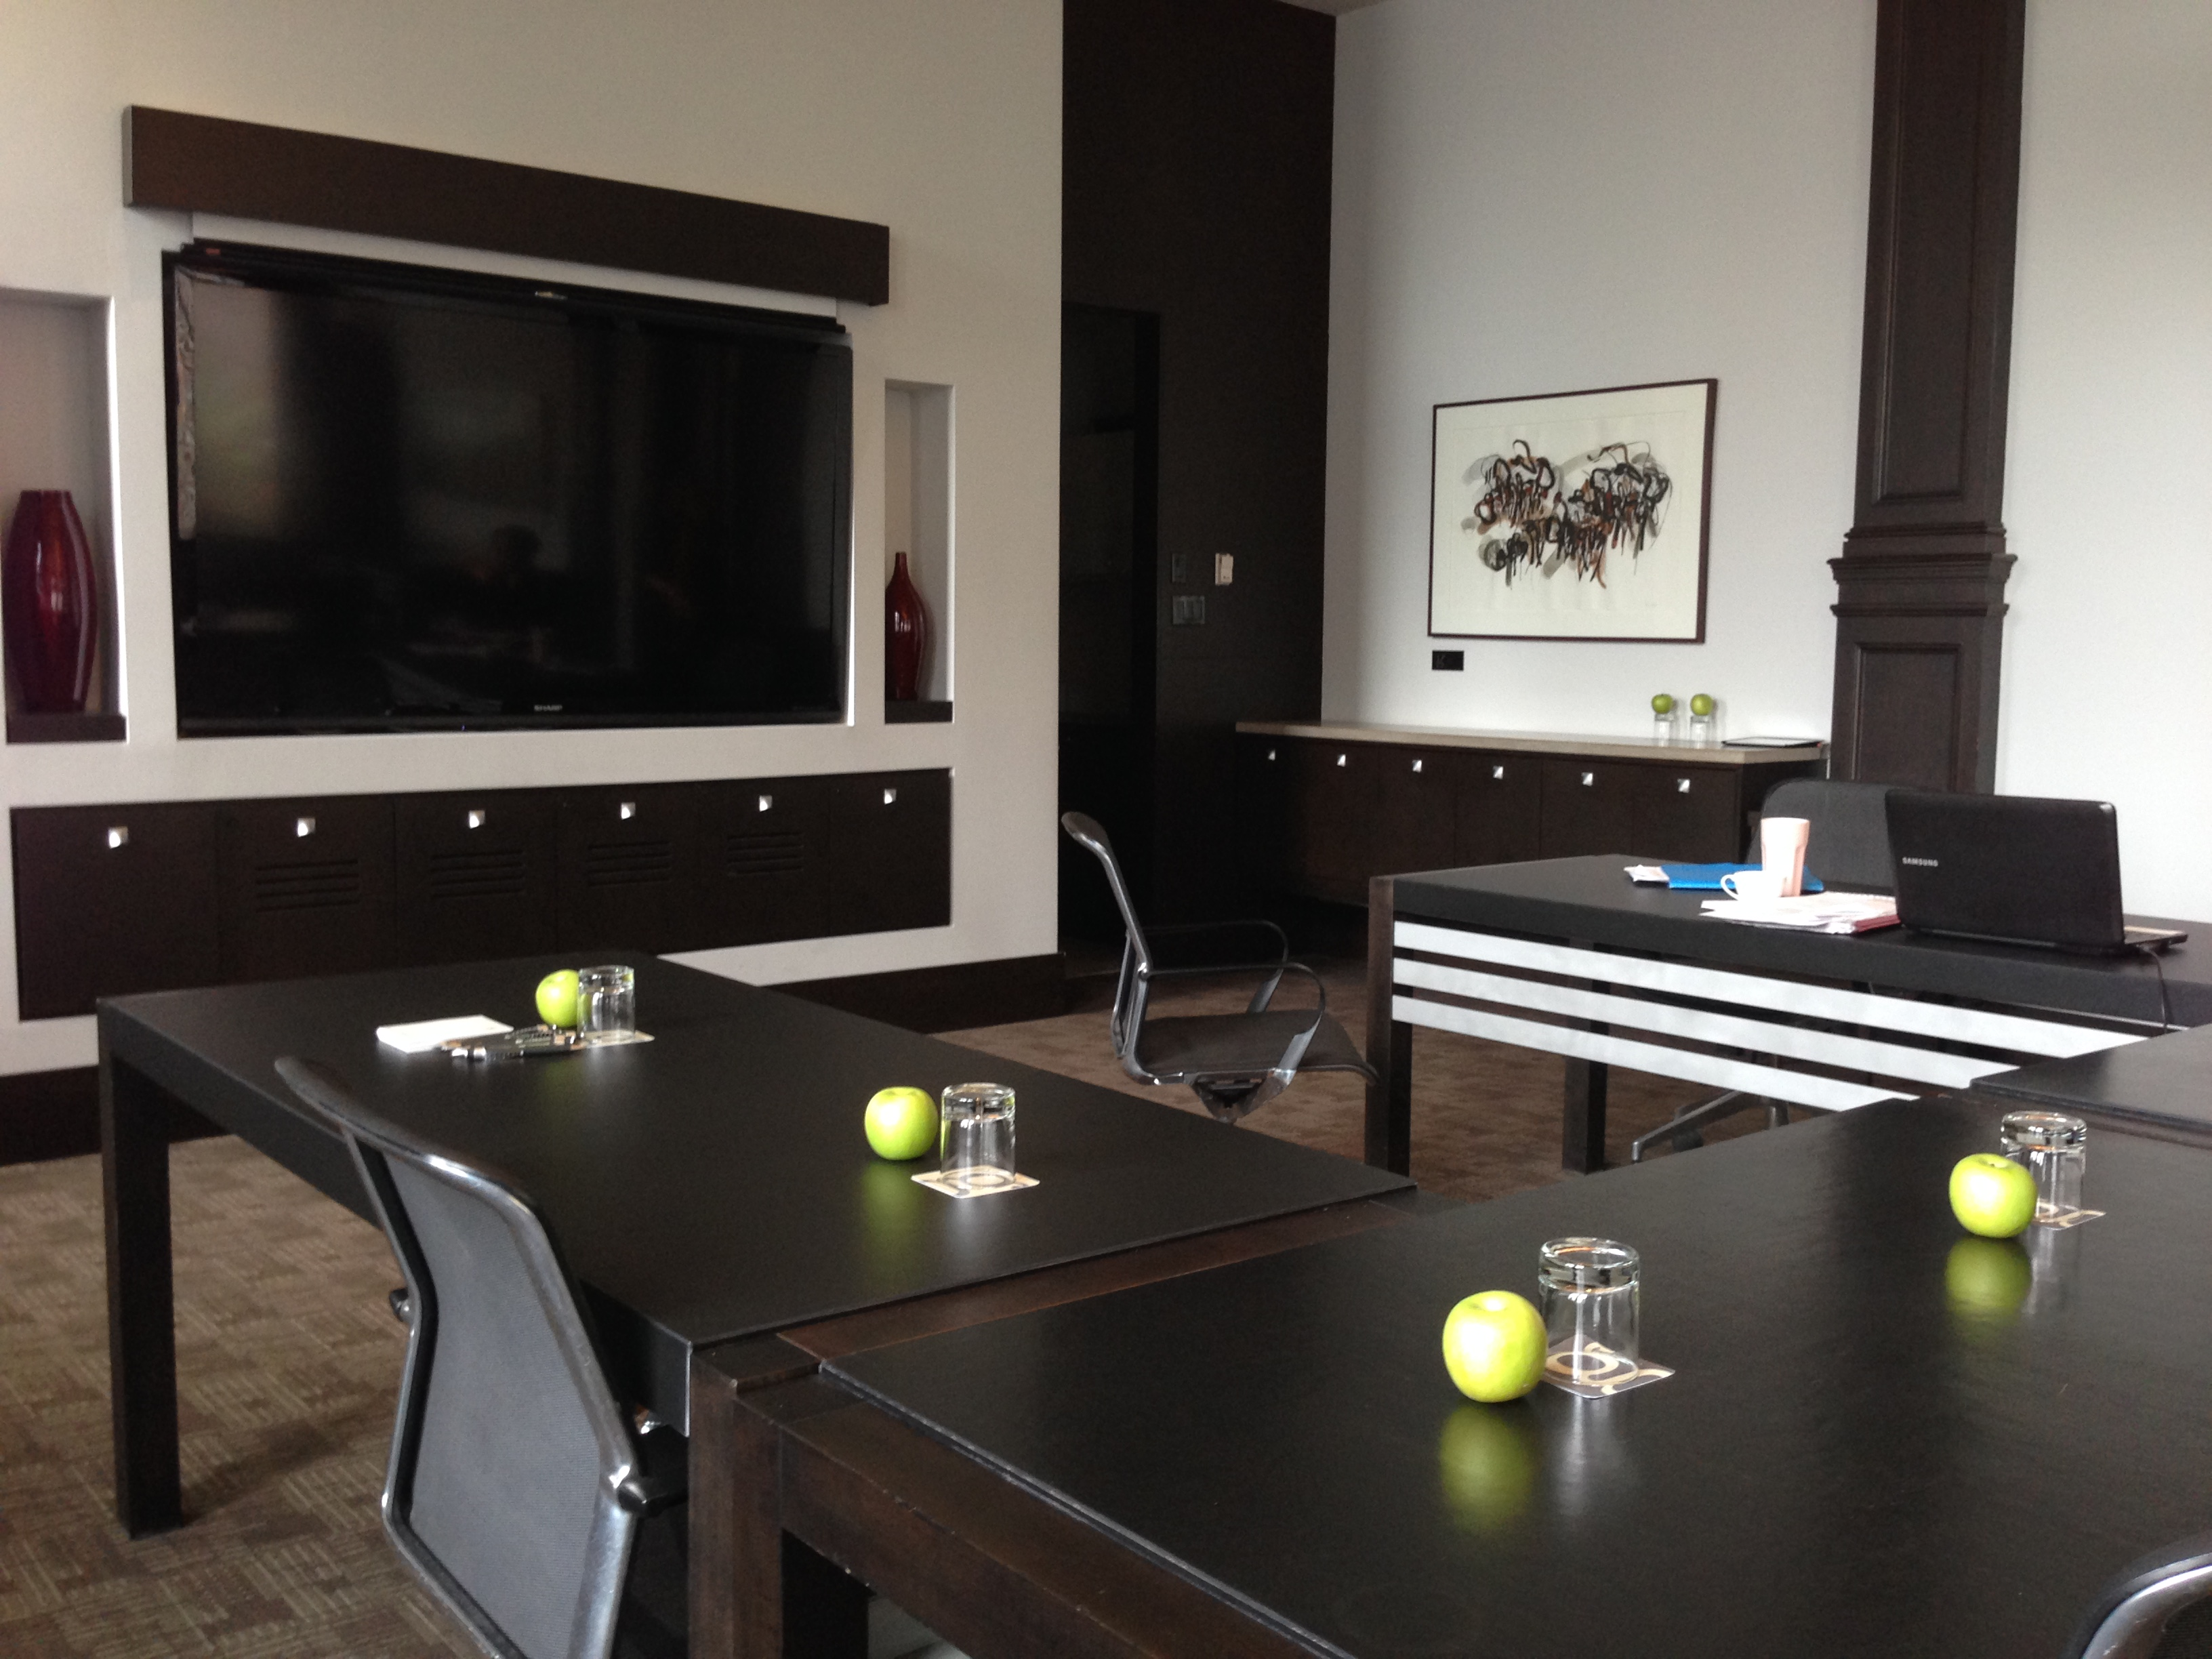 Hotel Germain Quebec Meeting Room Copyright Shelagh Donnelly